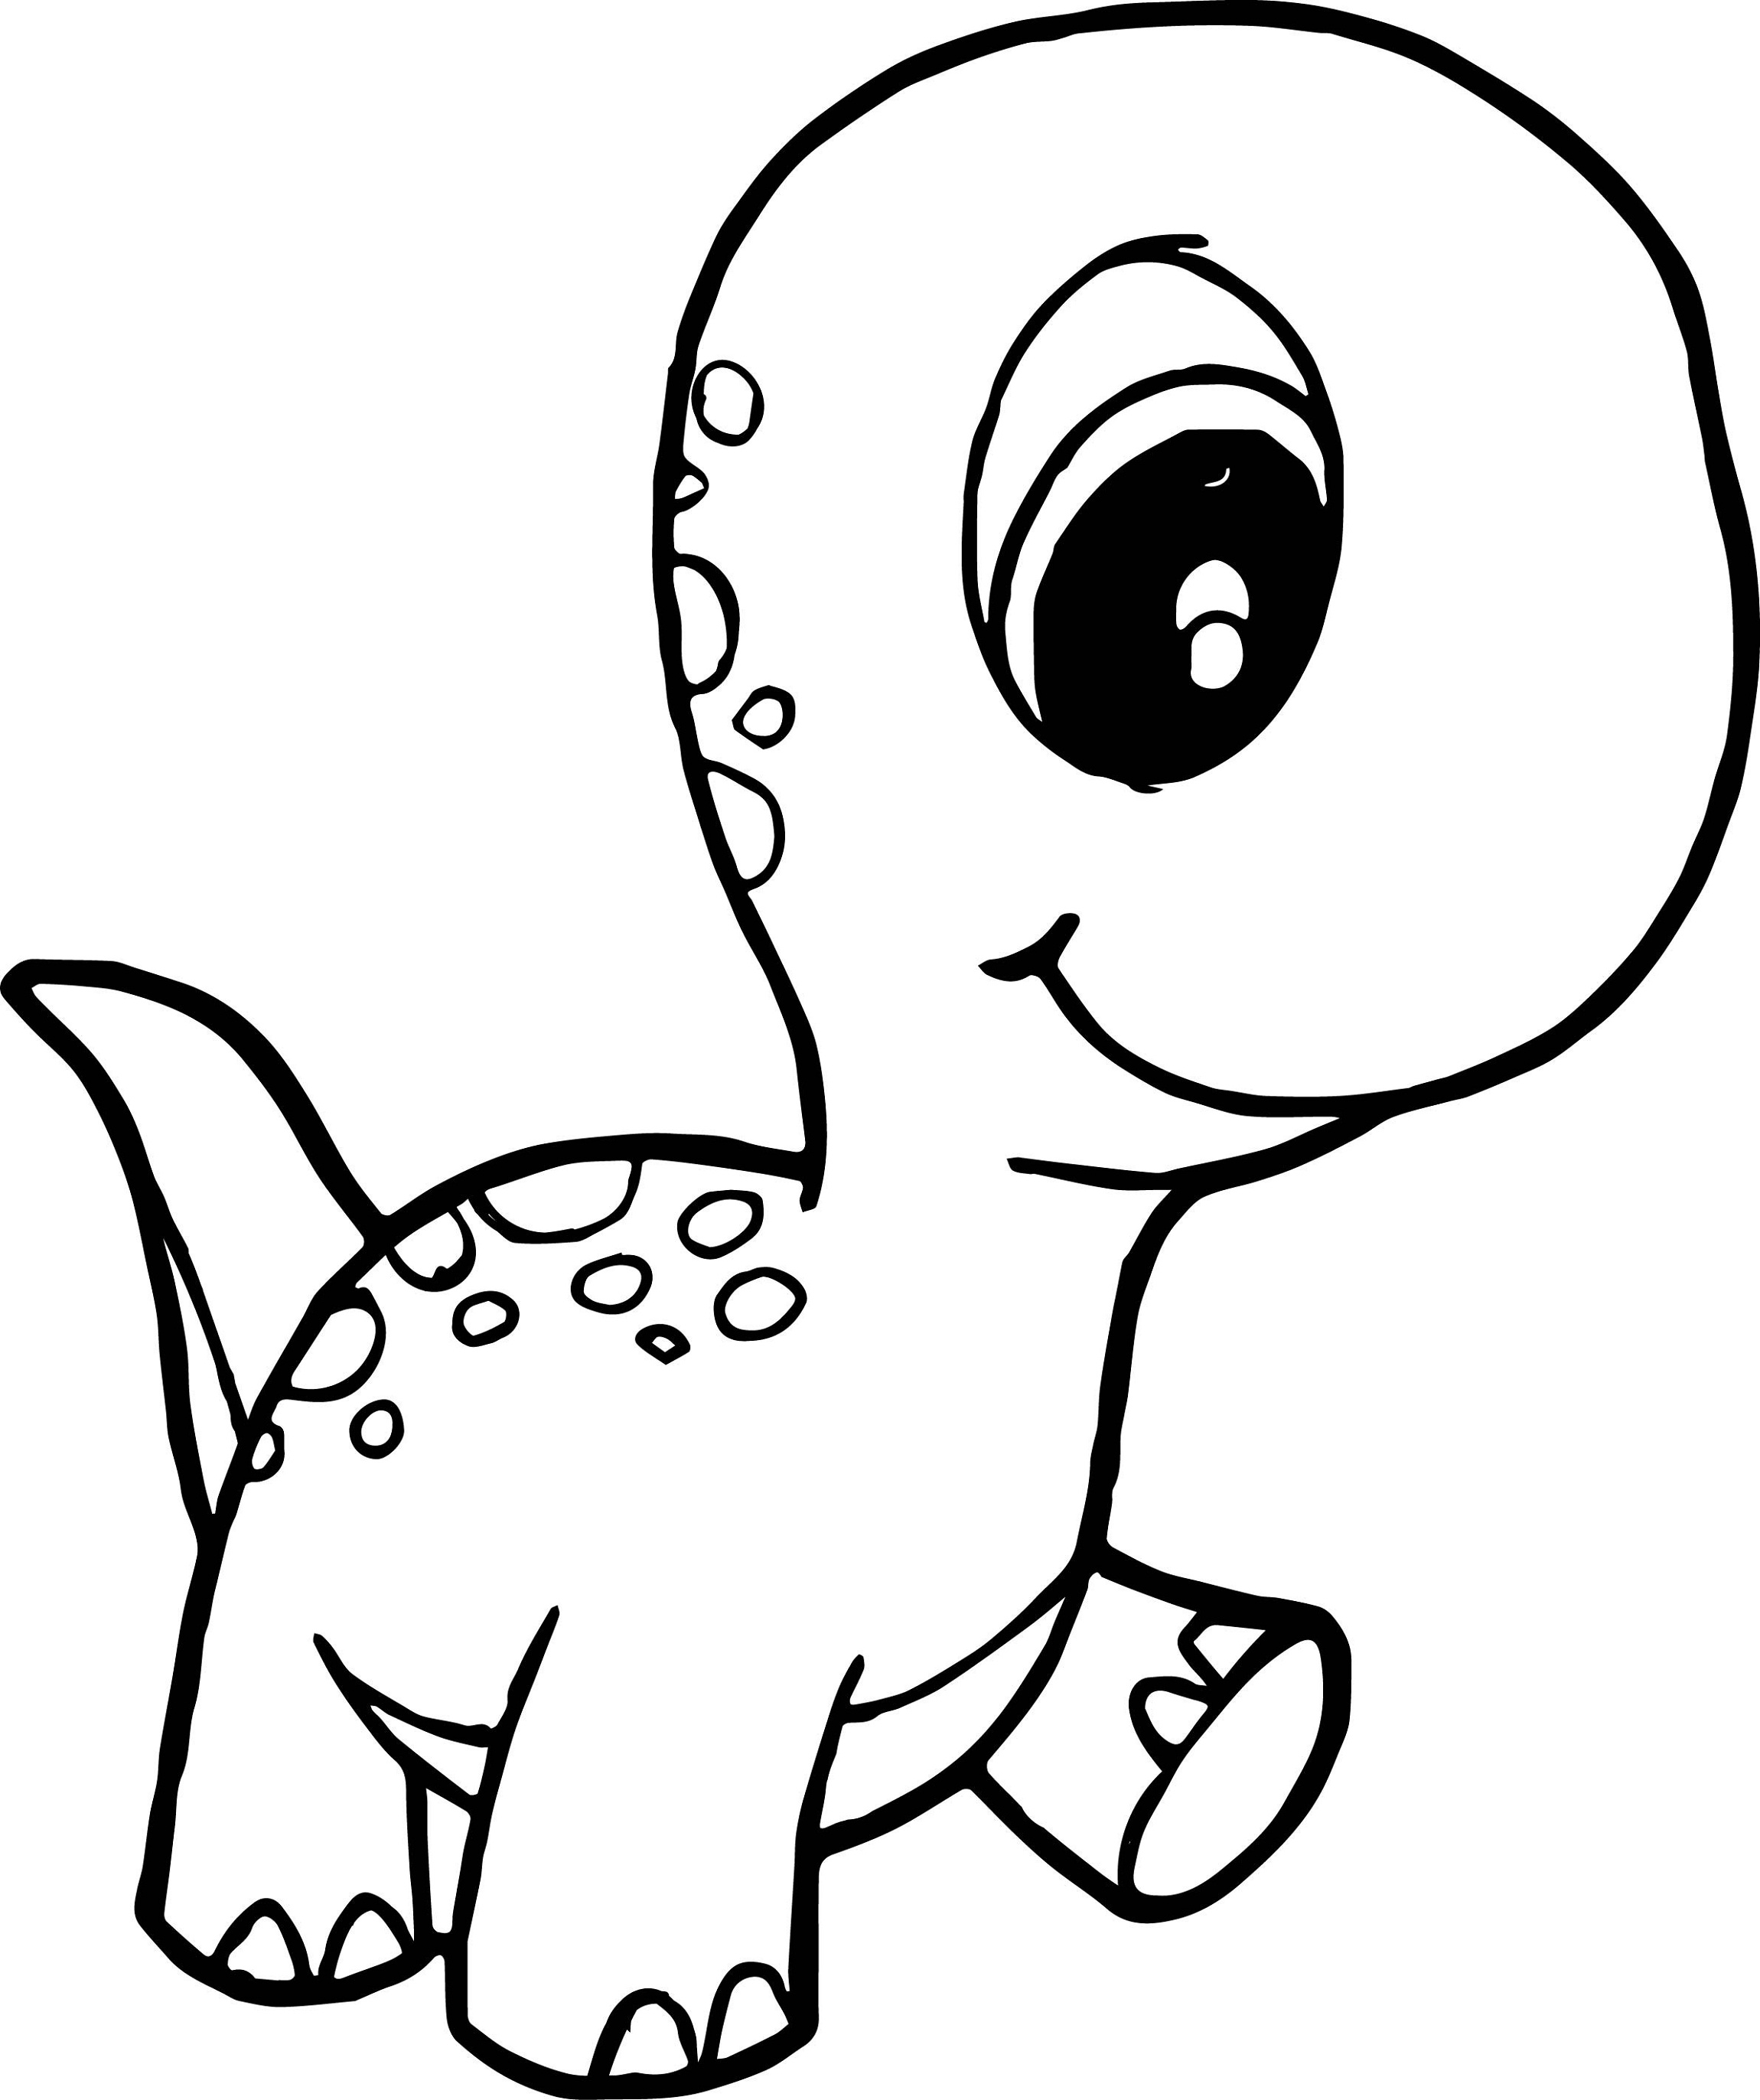 colouring in dinosaurs easy dinosaur coloring pages coloring home colouring in dinosaurs